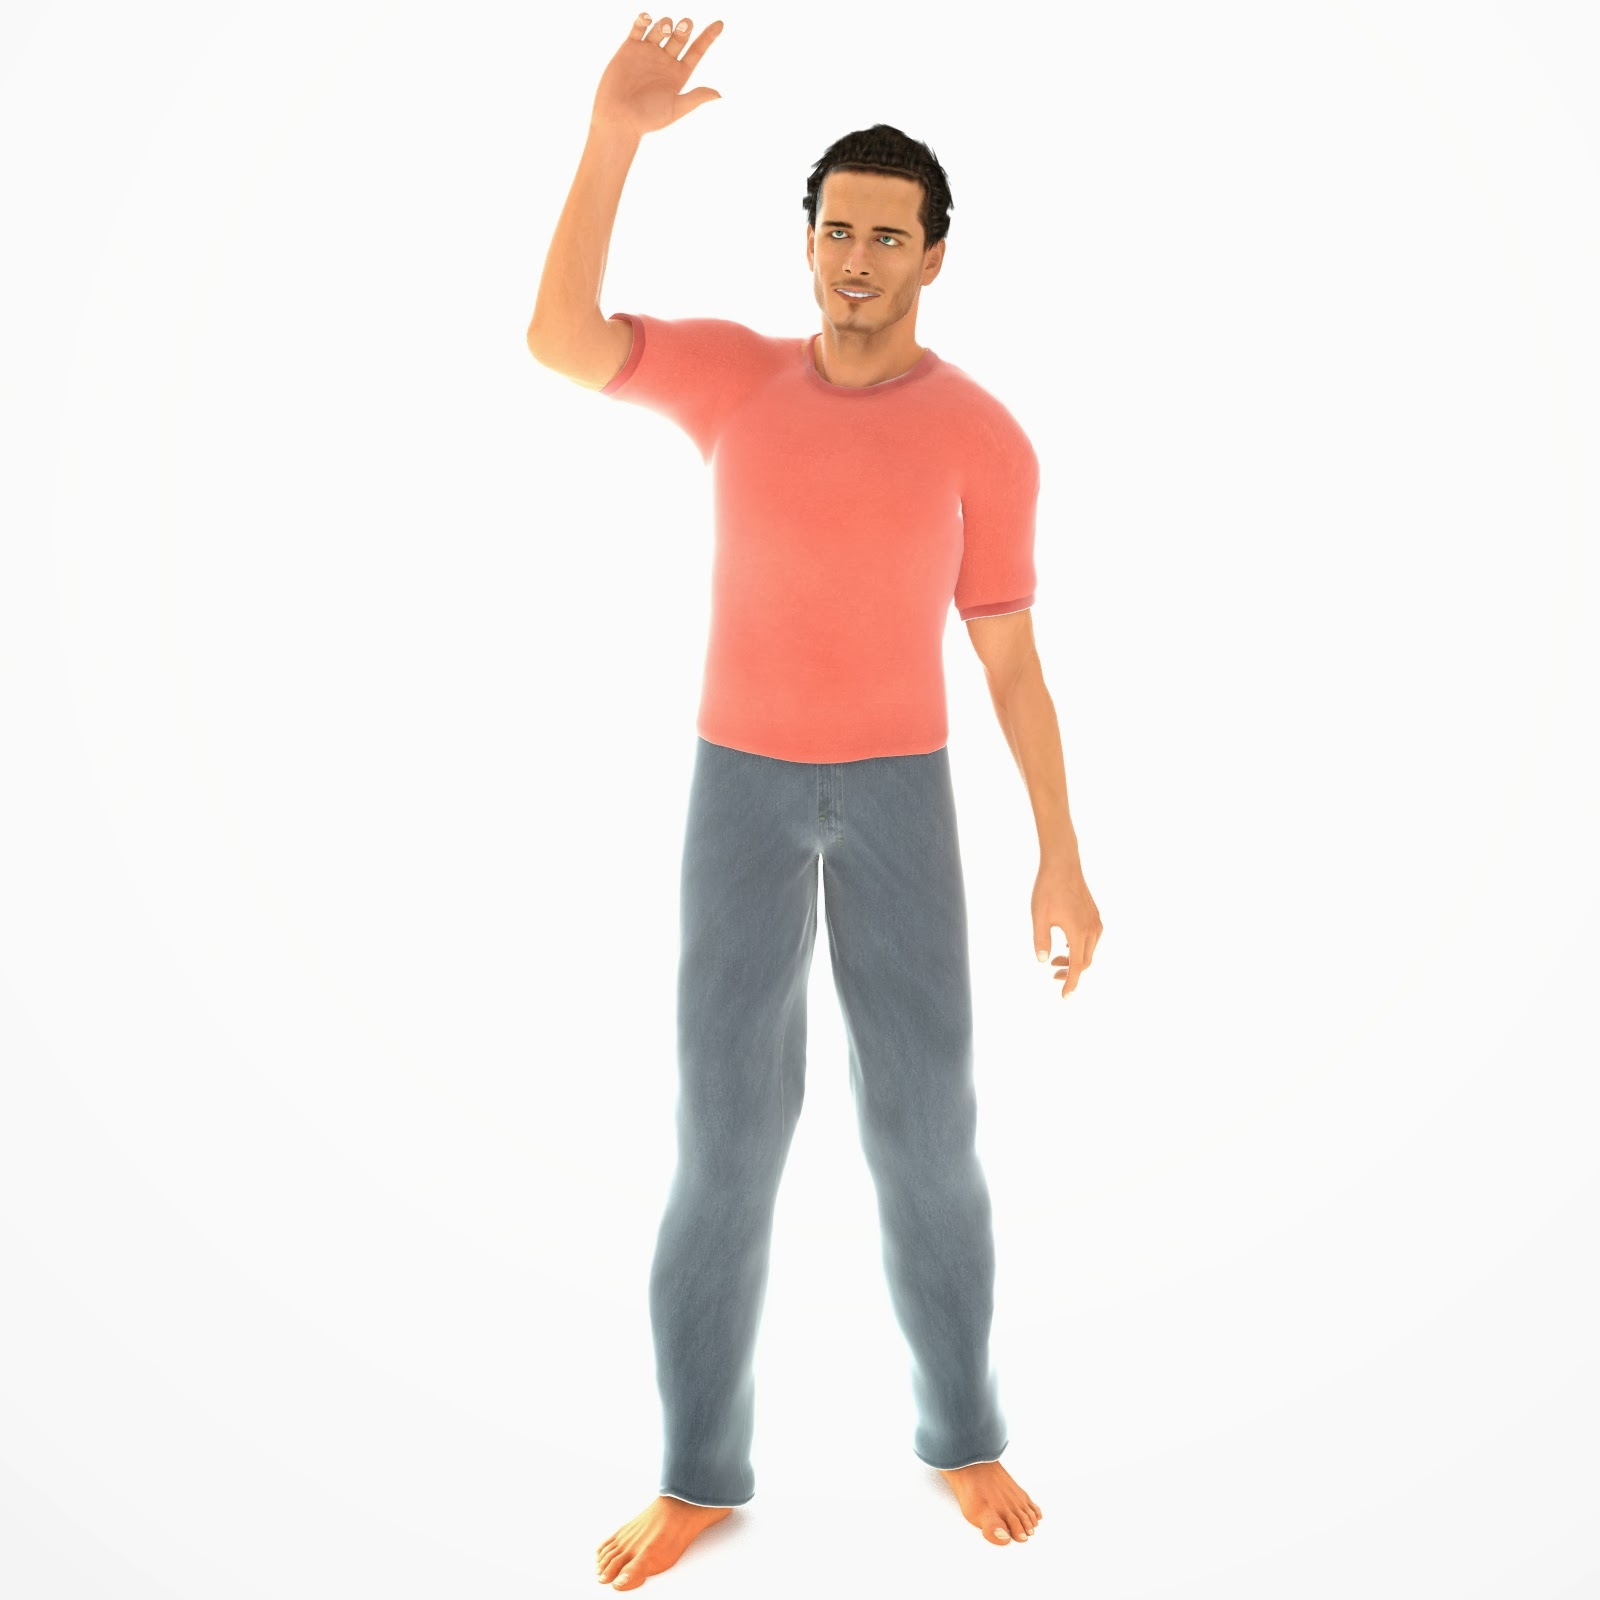 3d Male Character Models Free Stock 3d Models Library